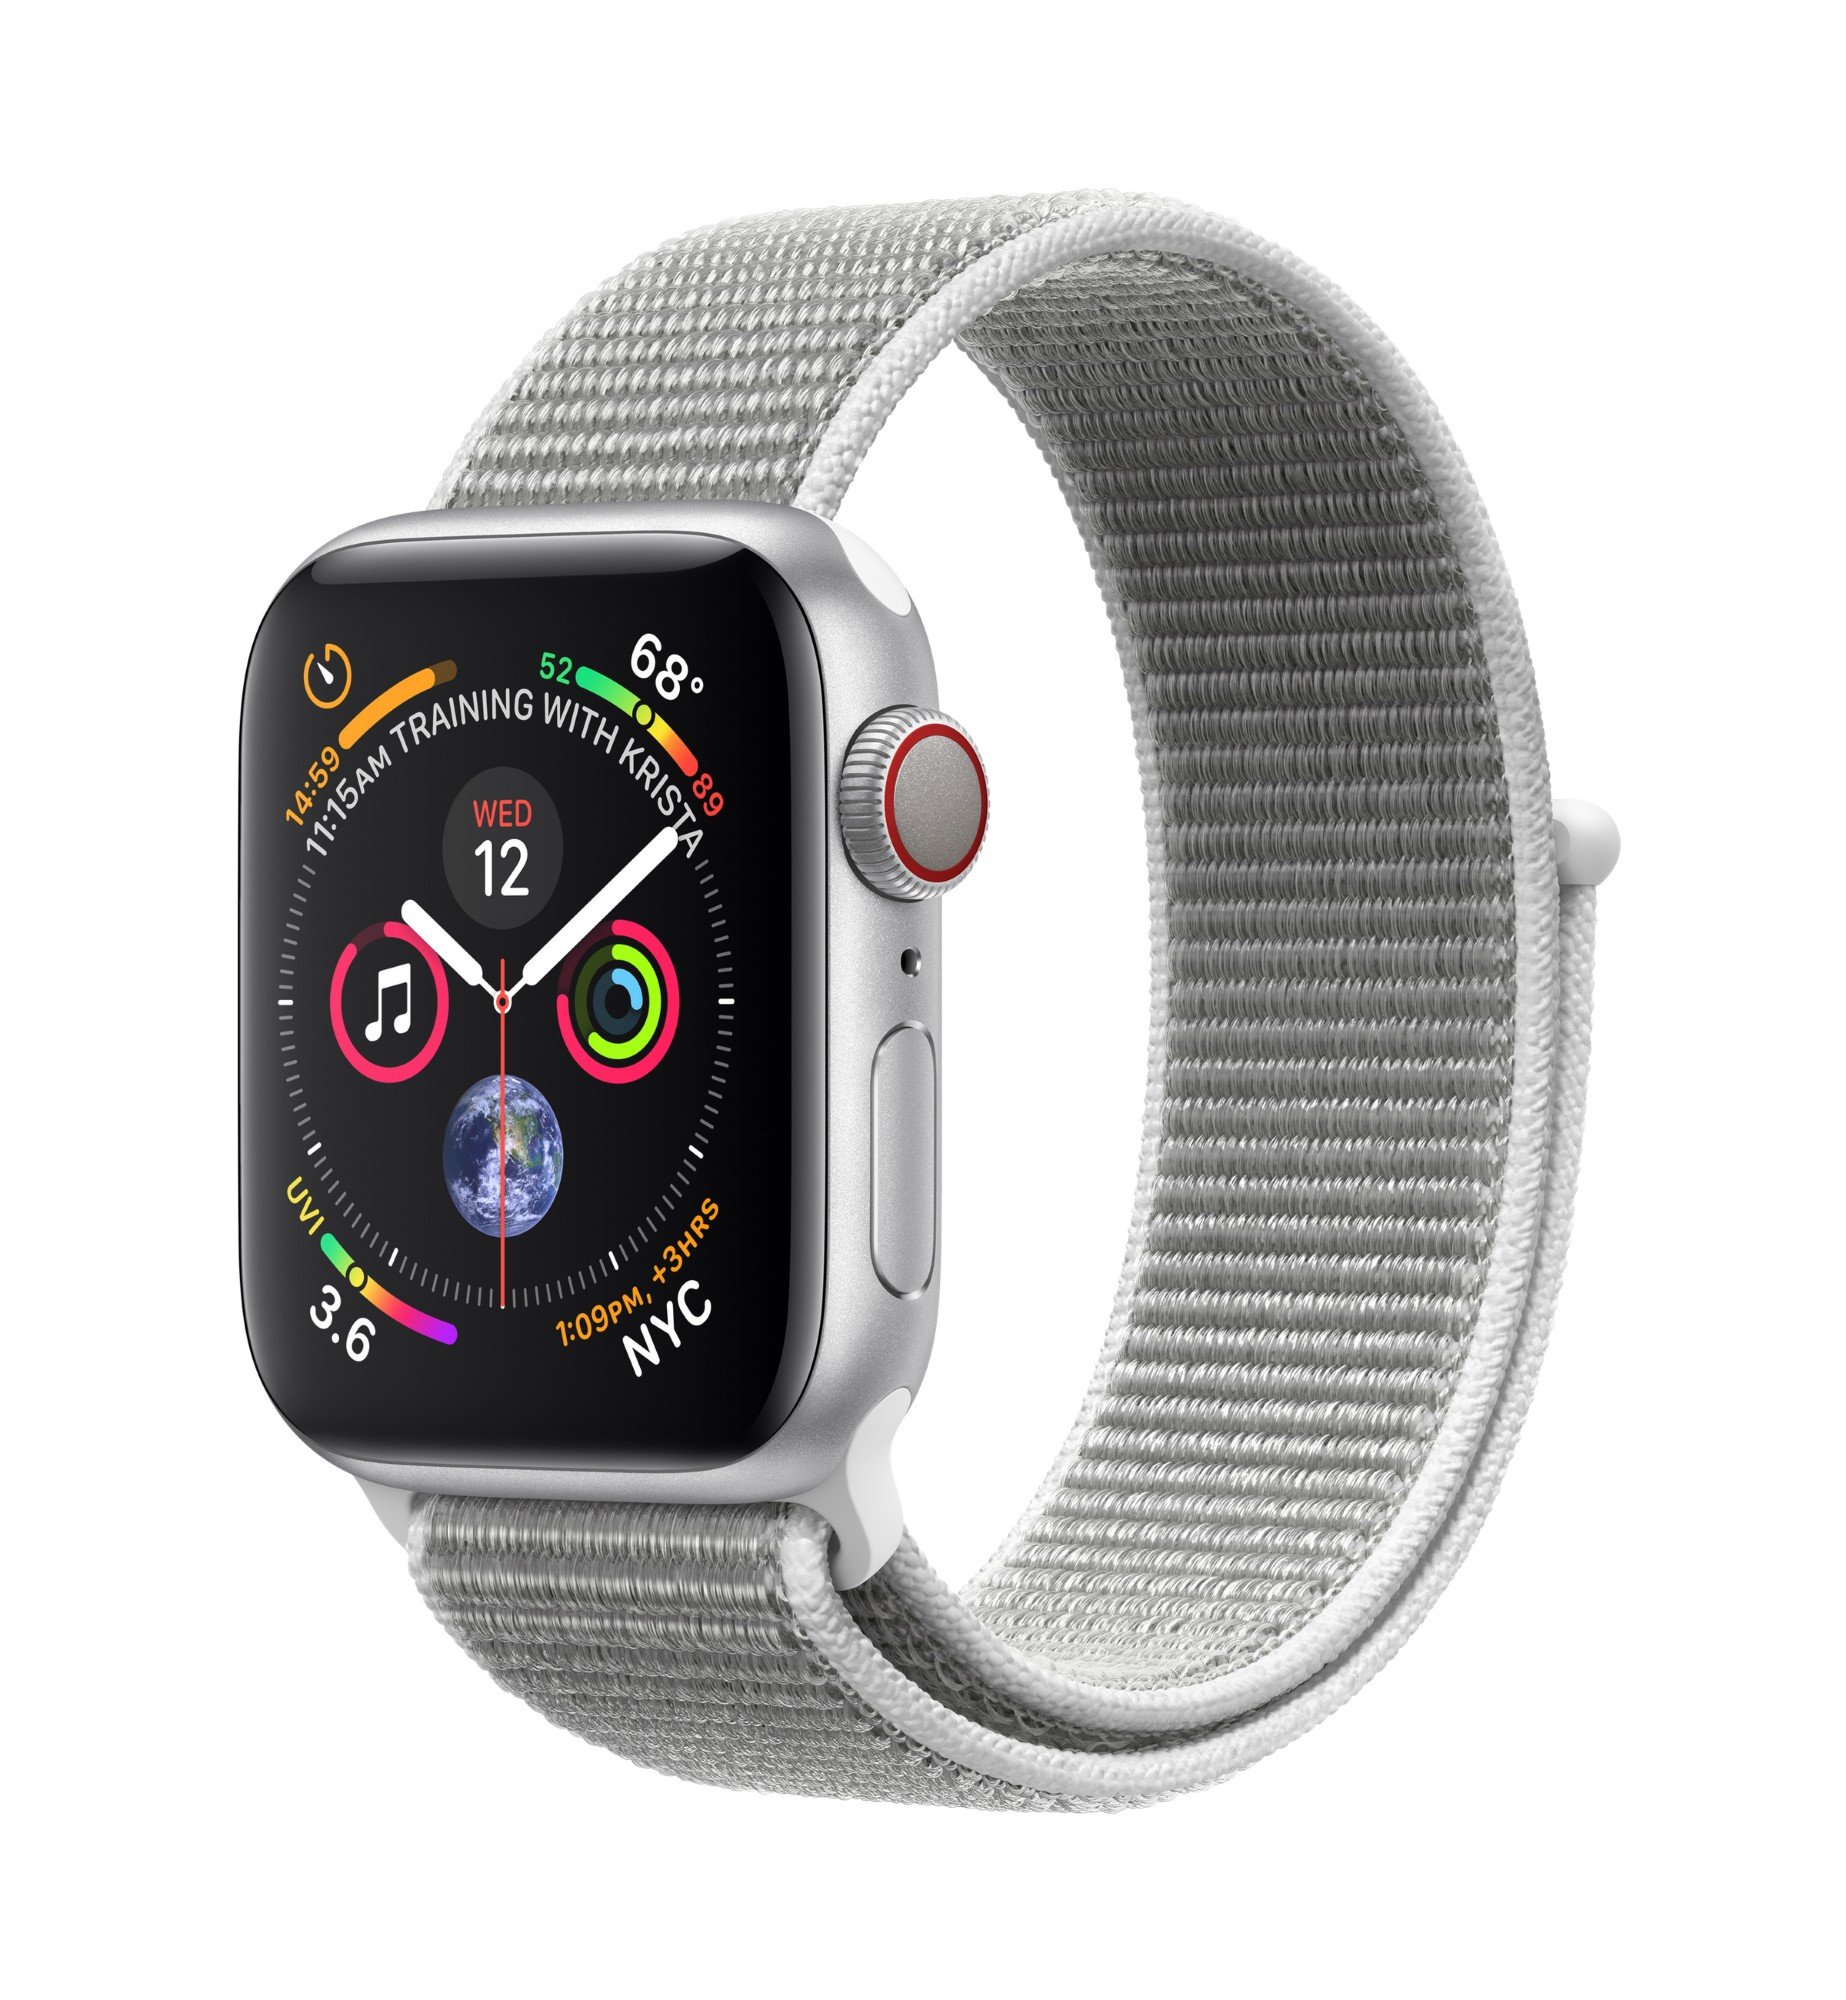 Apple Watch Series 4 smartwatch Silver OLED Cellular GPS (satellite)